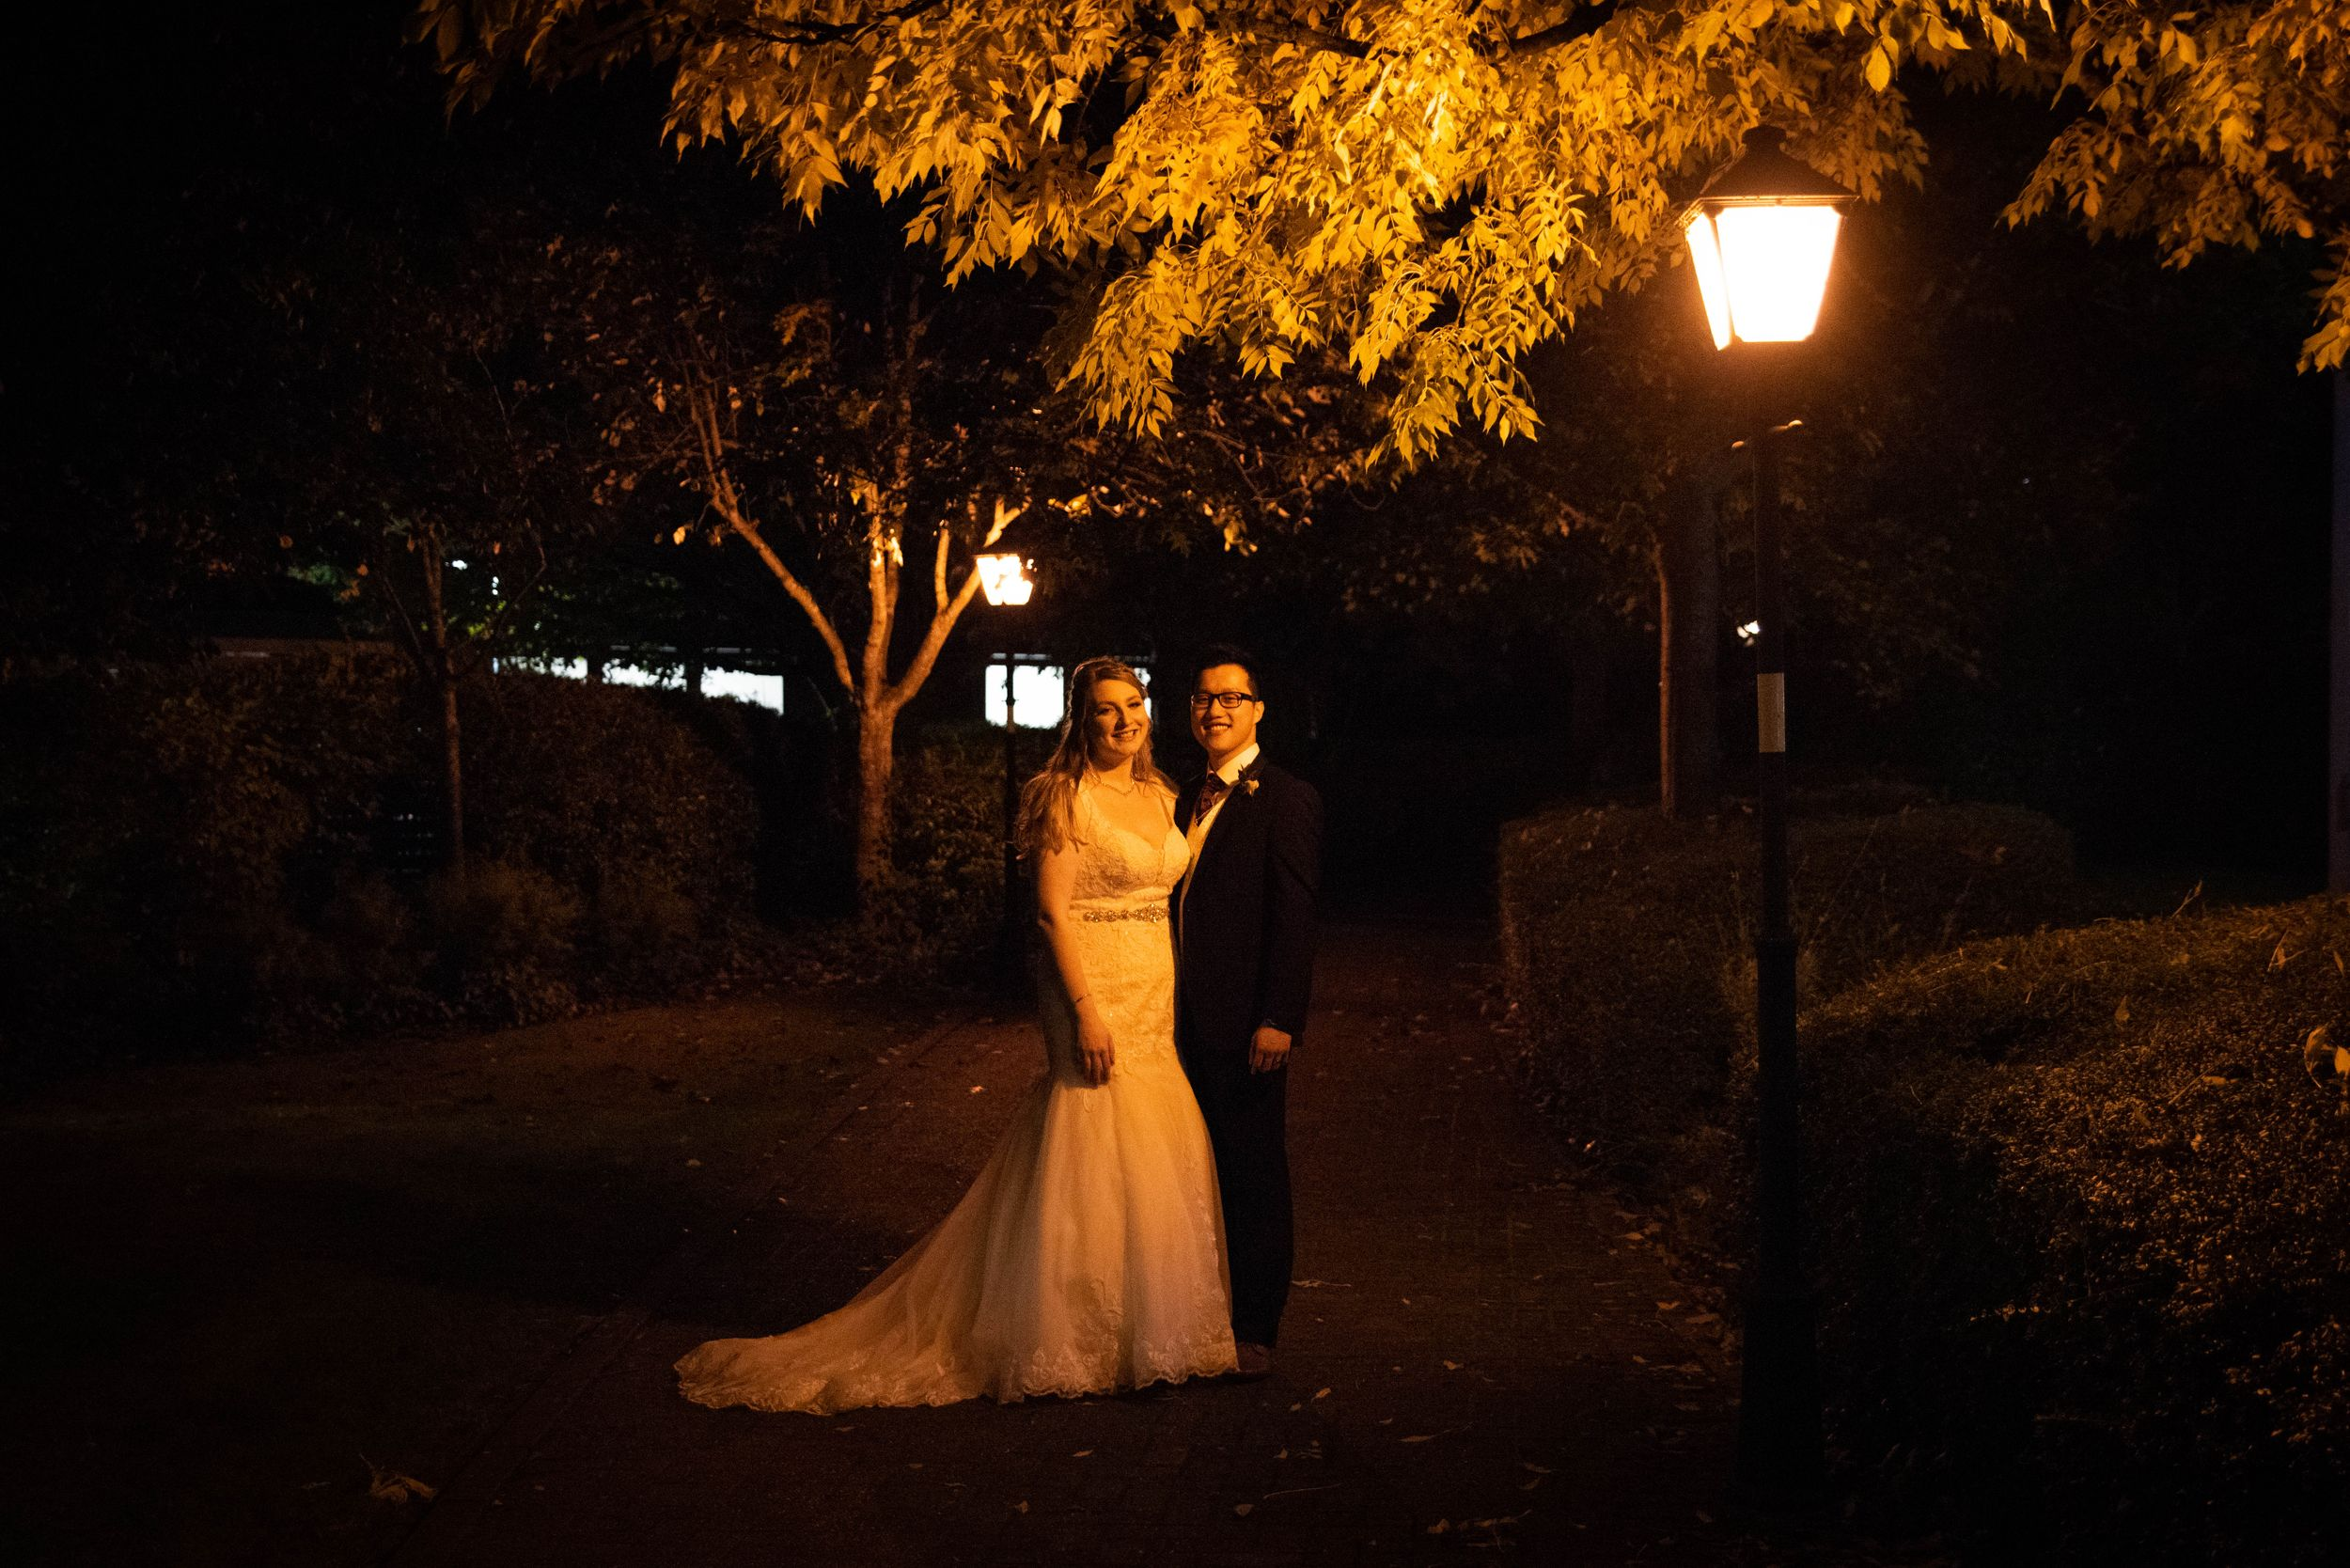 Zara Davis Wedding Photography Aztec West Hotel Bristol Avon Gloucestershire Cotswolds nighttime bride and groom